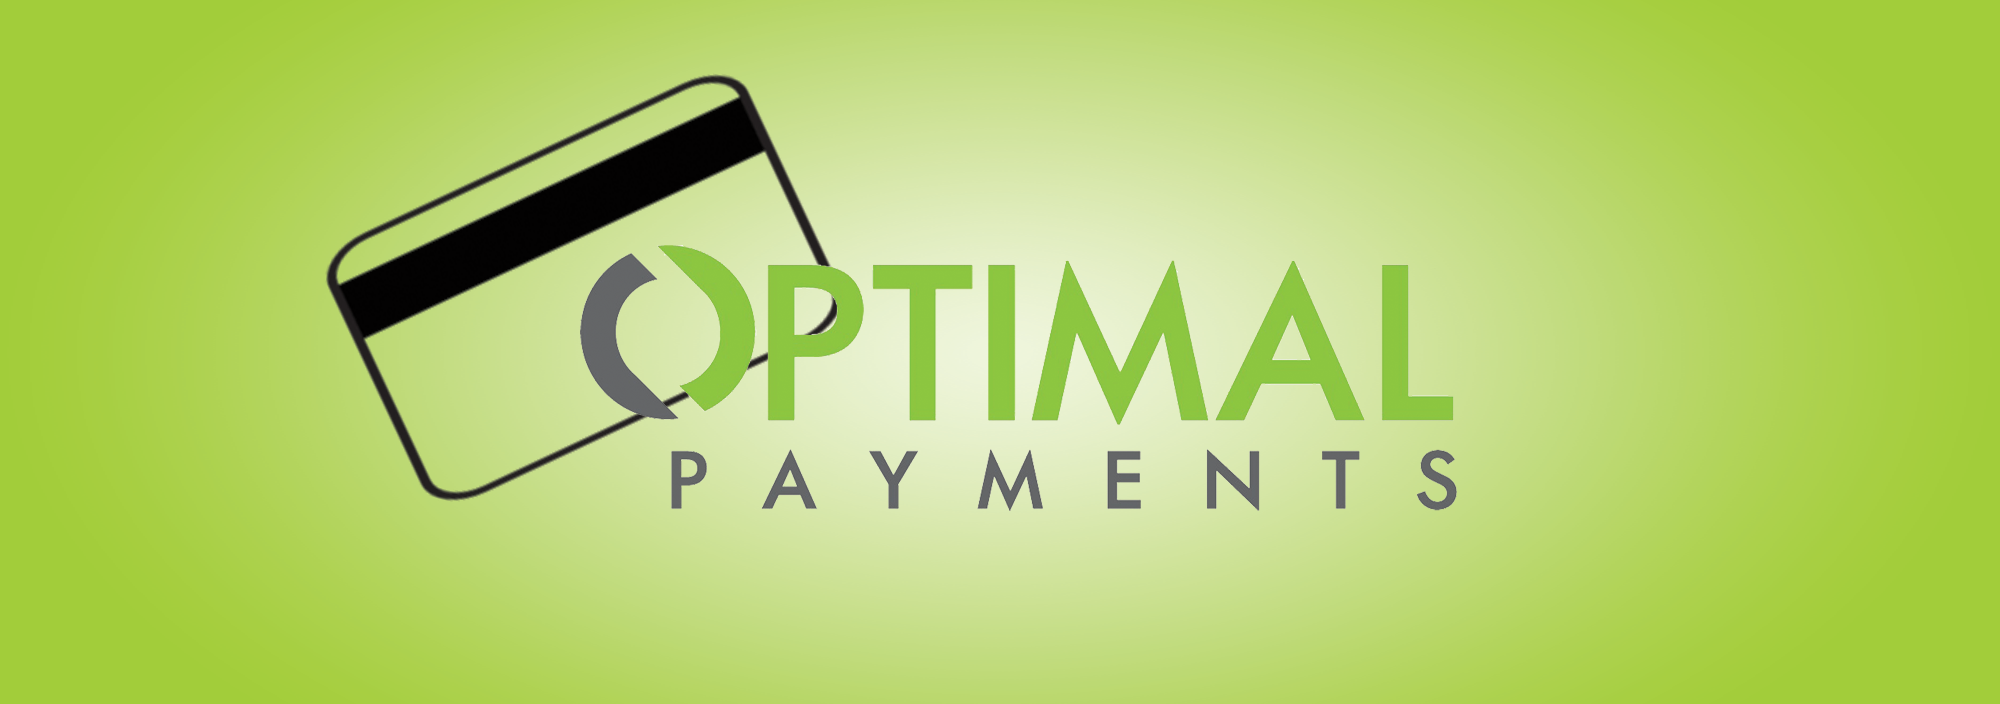 optimal_payments_panel_1